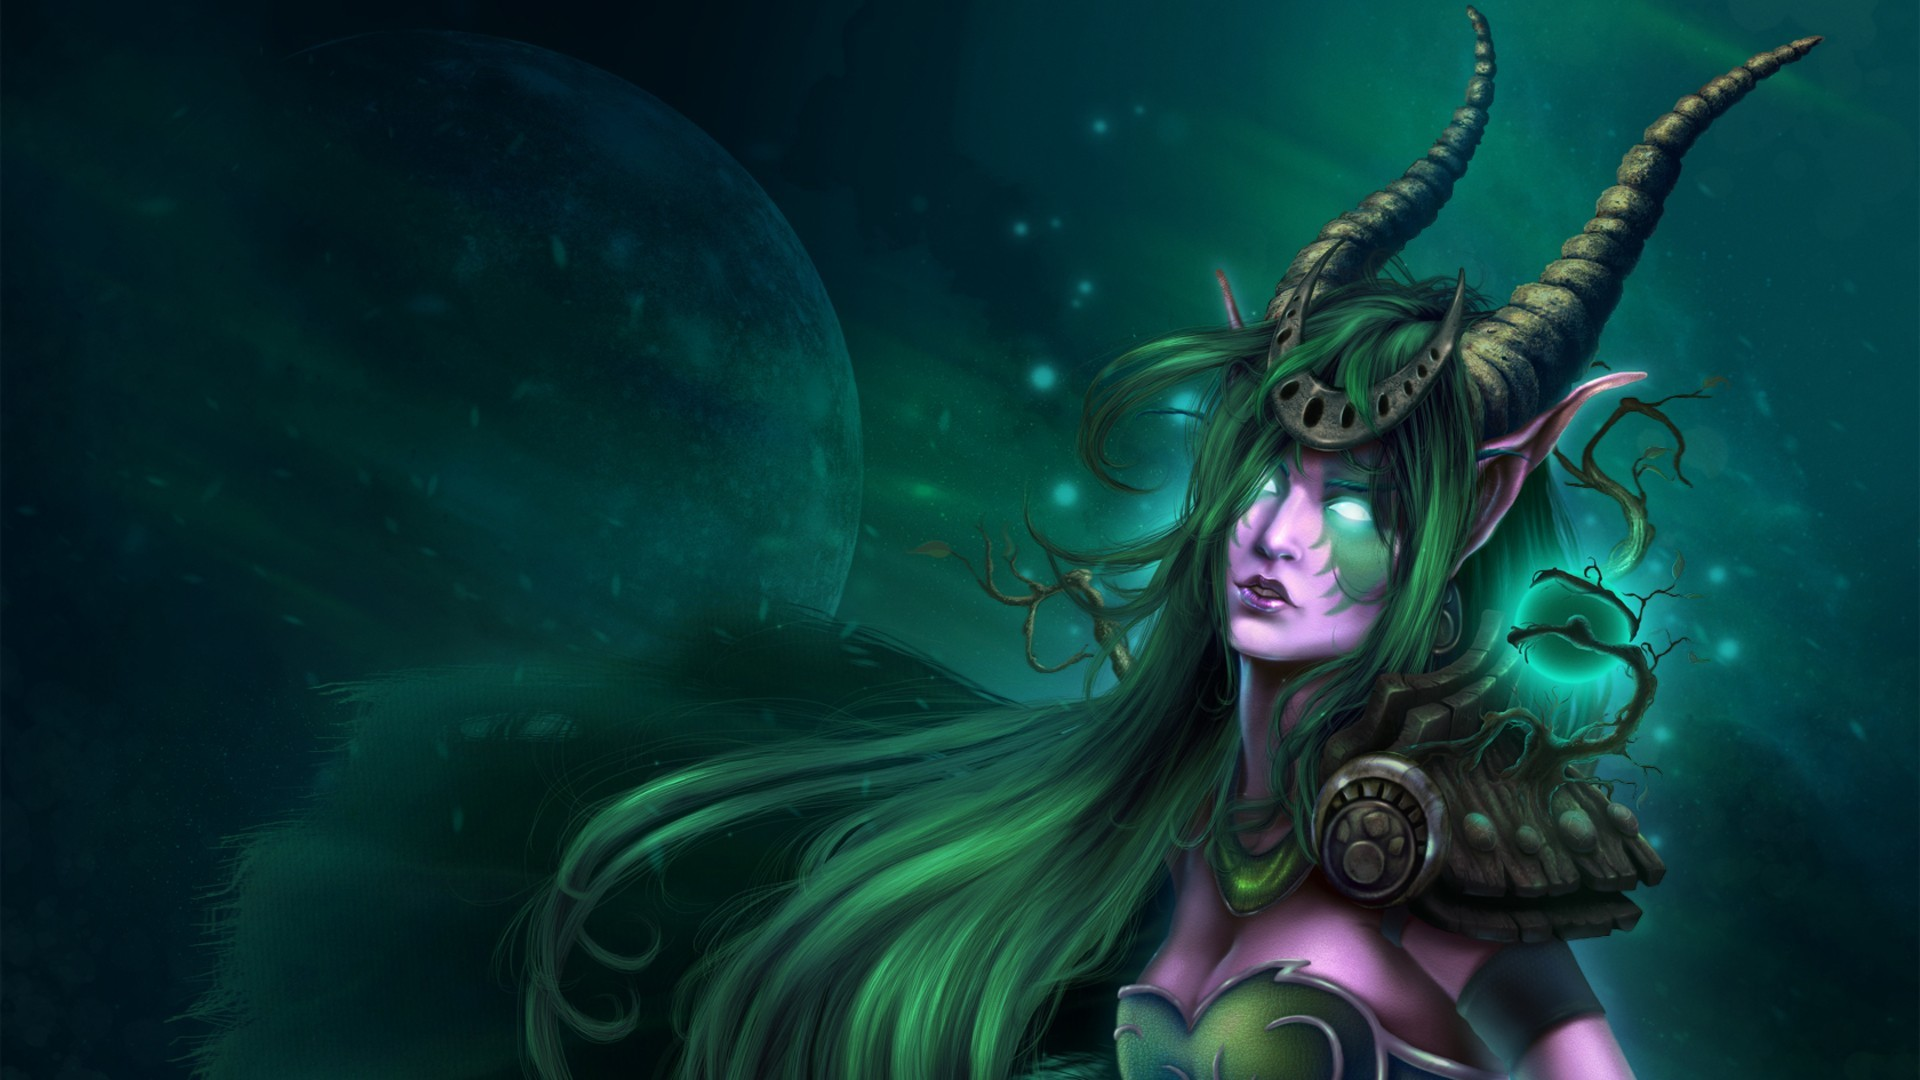 World of warcraft wallpapers 76 images - World of warcraft images ...